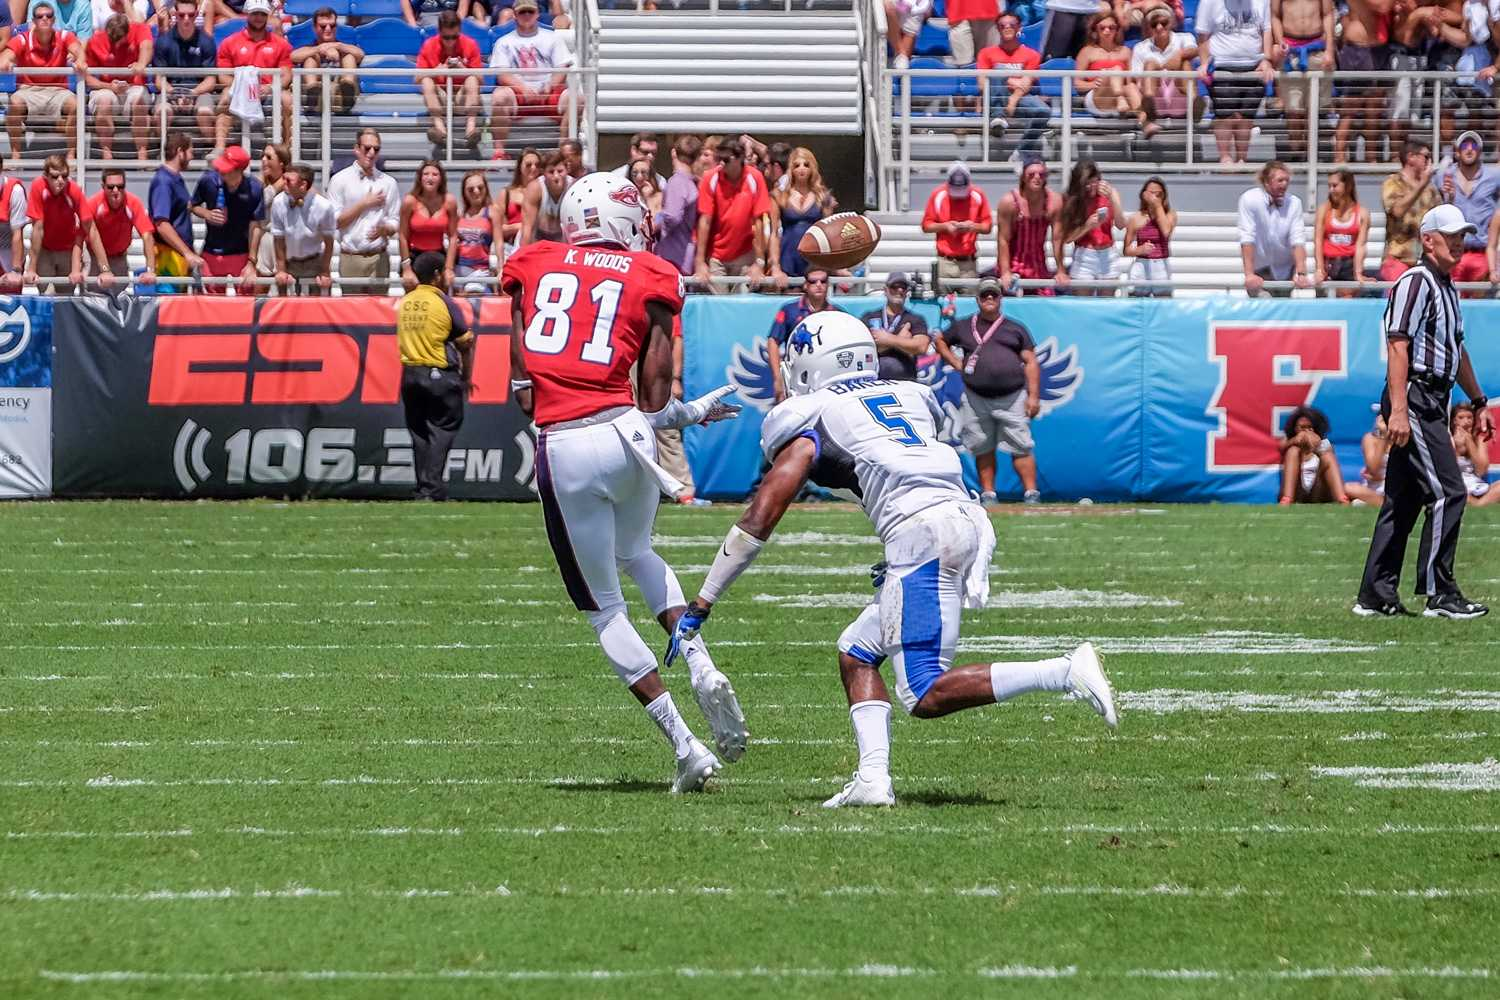 Kalib Woods (81) catches the ball in traffic as Buffalo cornerback Marquis Baker waits to tackle. Woods totaled 35 yard. Mohammed F Emran | Staff Photographer